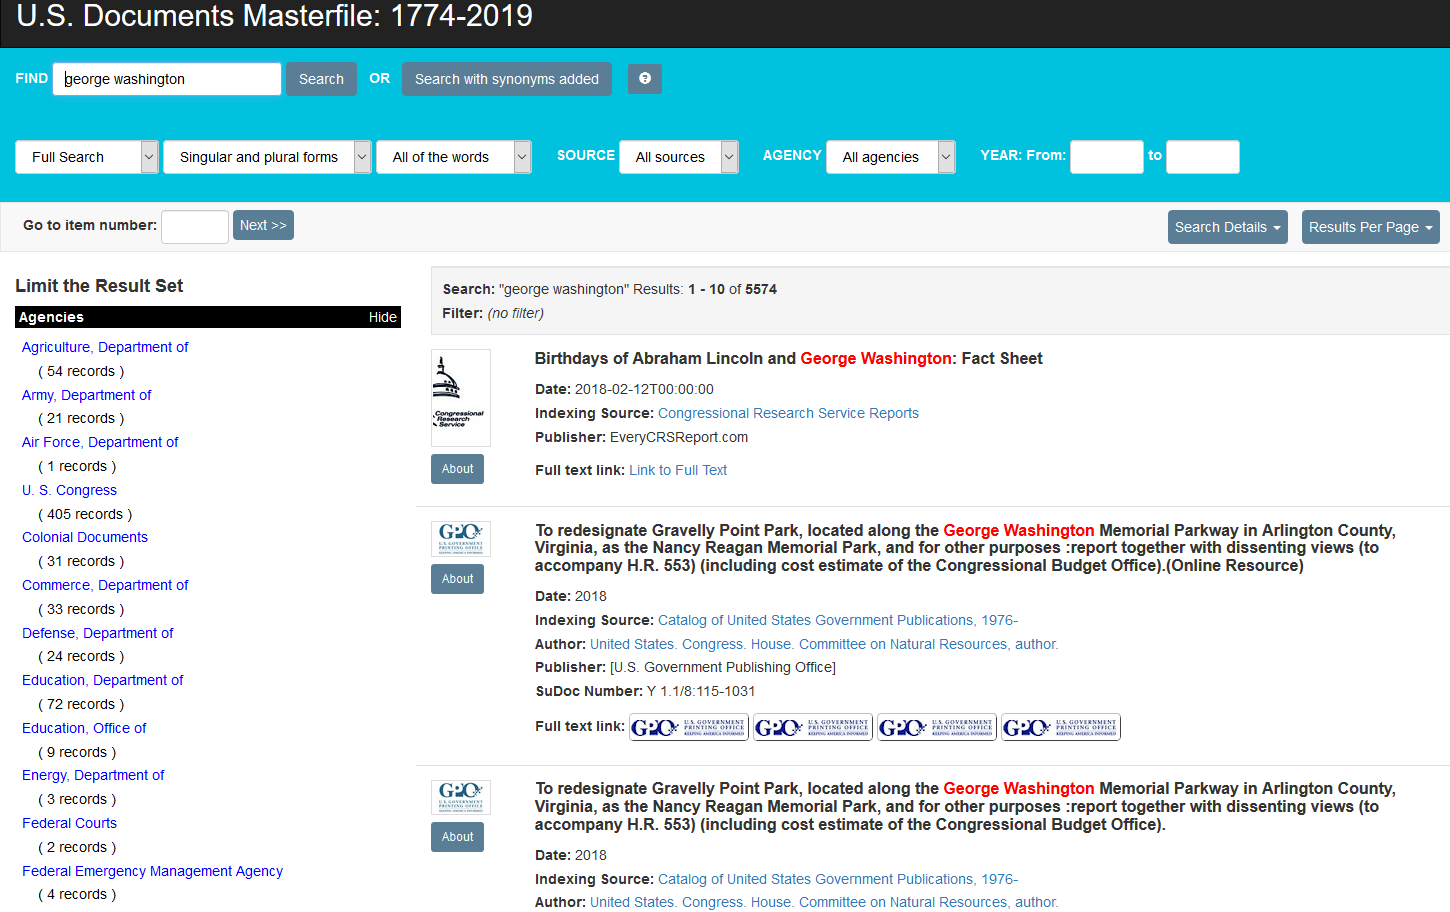 USDM search results page